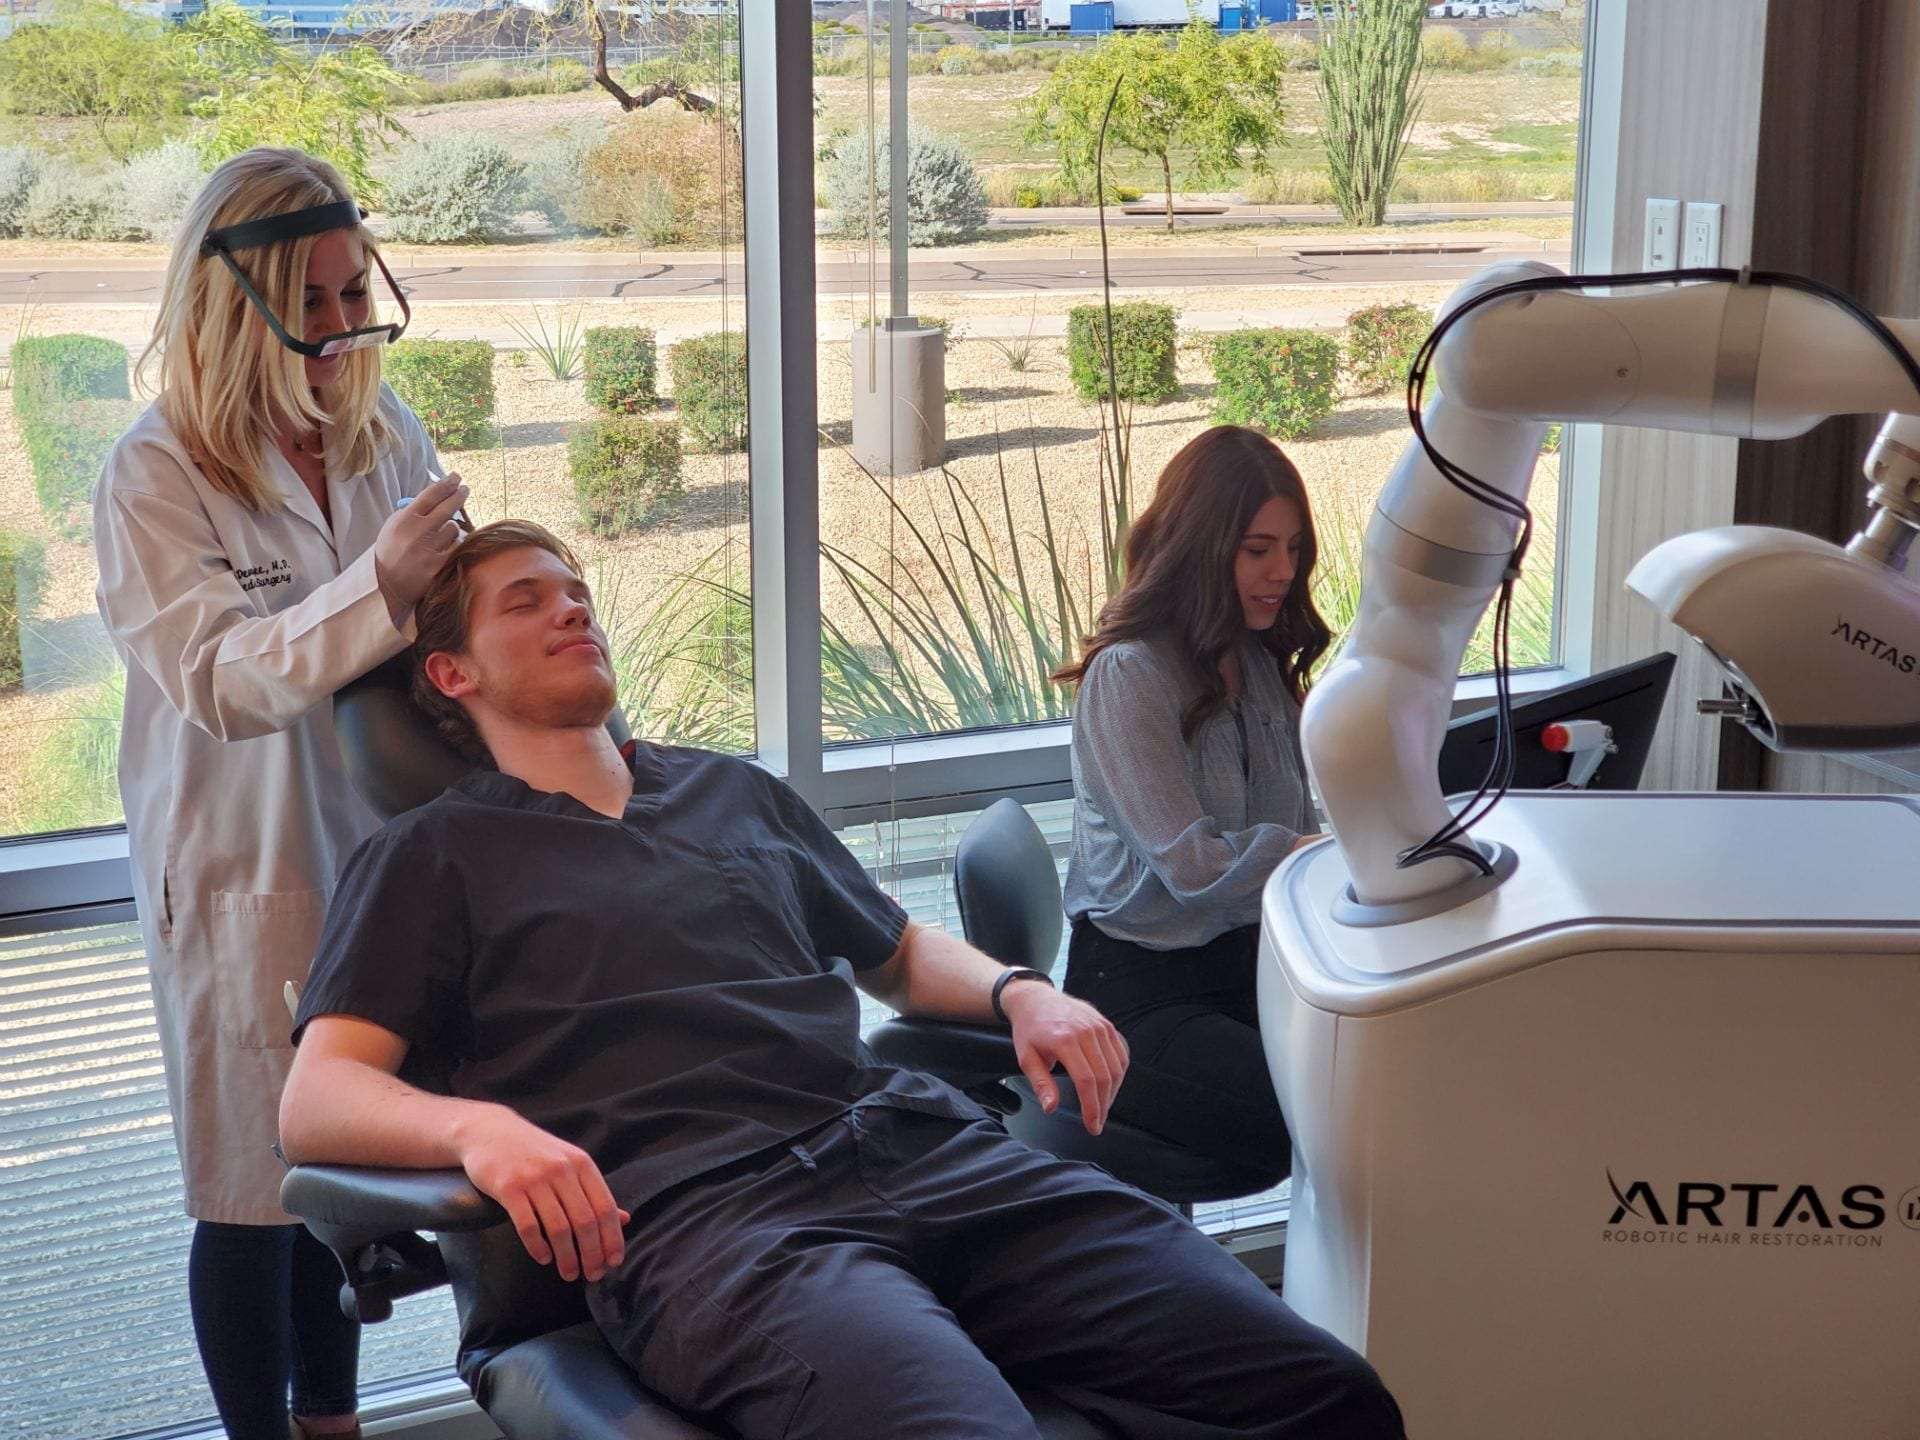 Robotic hair restoration procedure being done on a man.